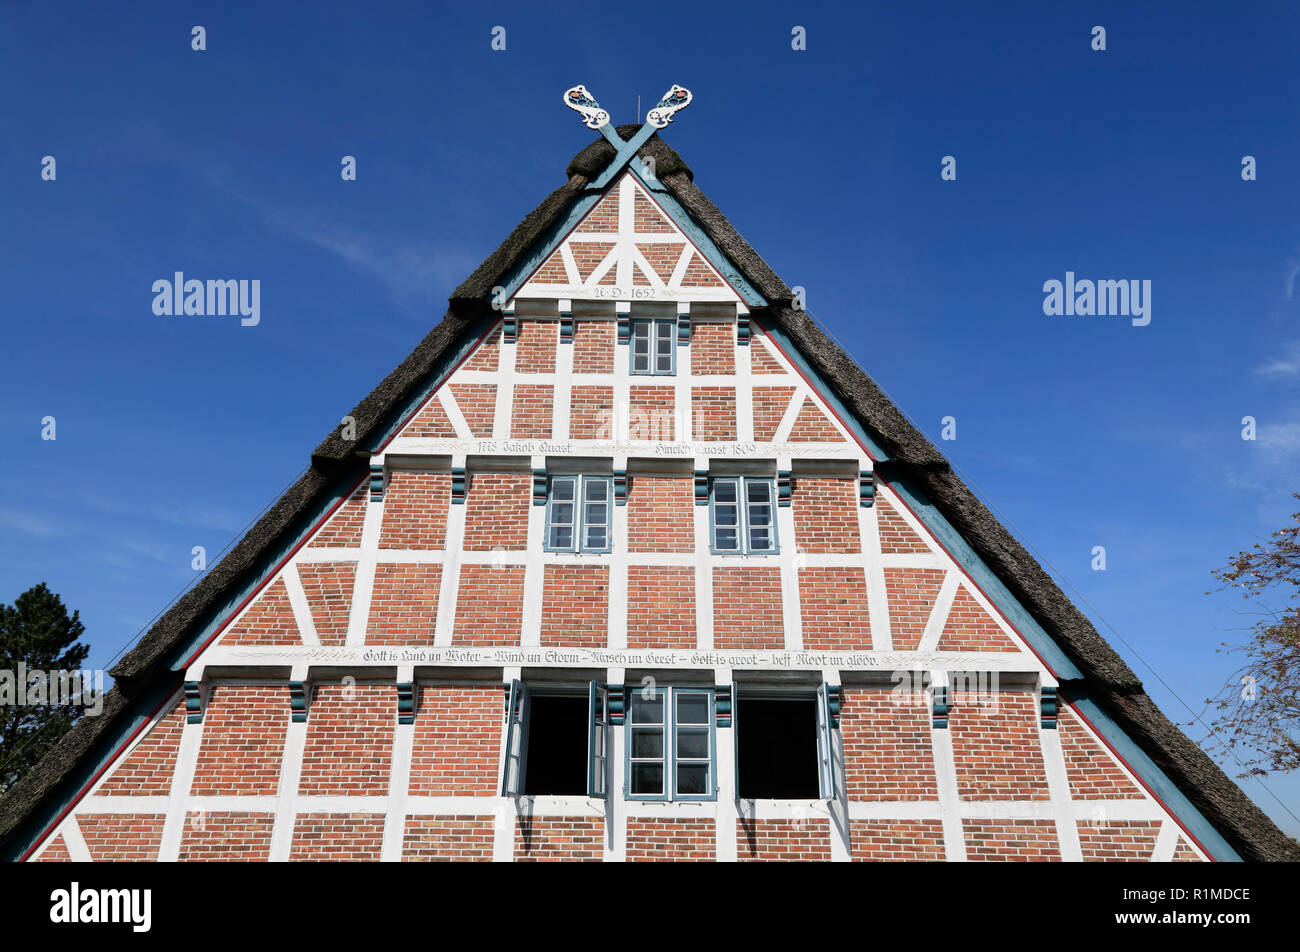 Old Farmhouse at Este-dike, Jork-Koenigreich, Altes Land, Lower Saxony, Germany, Europe - Stock Image